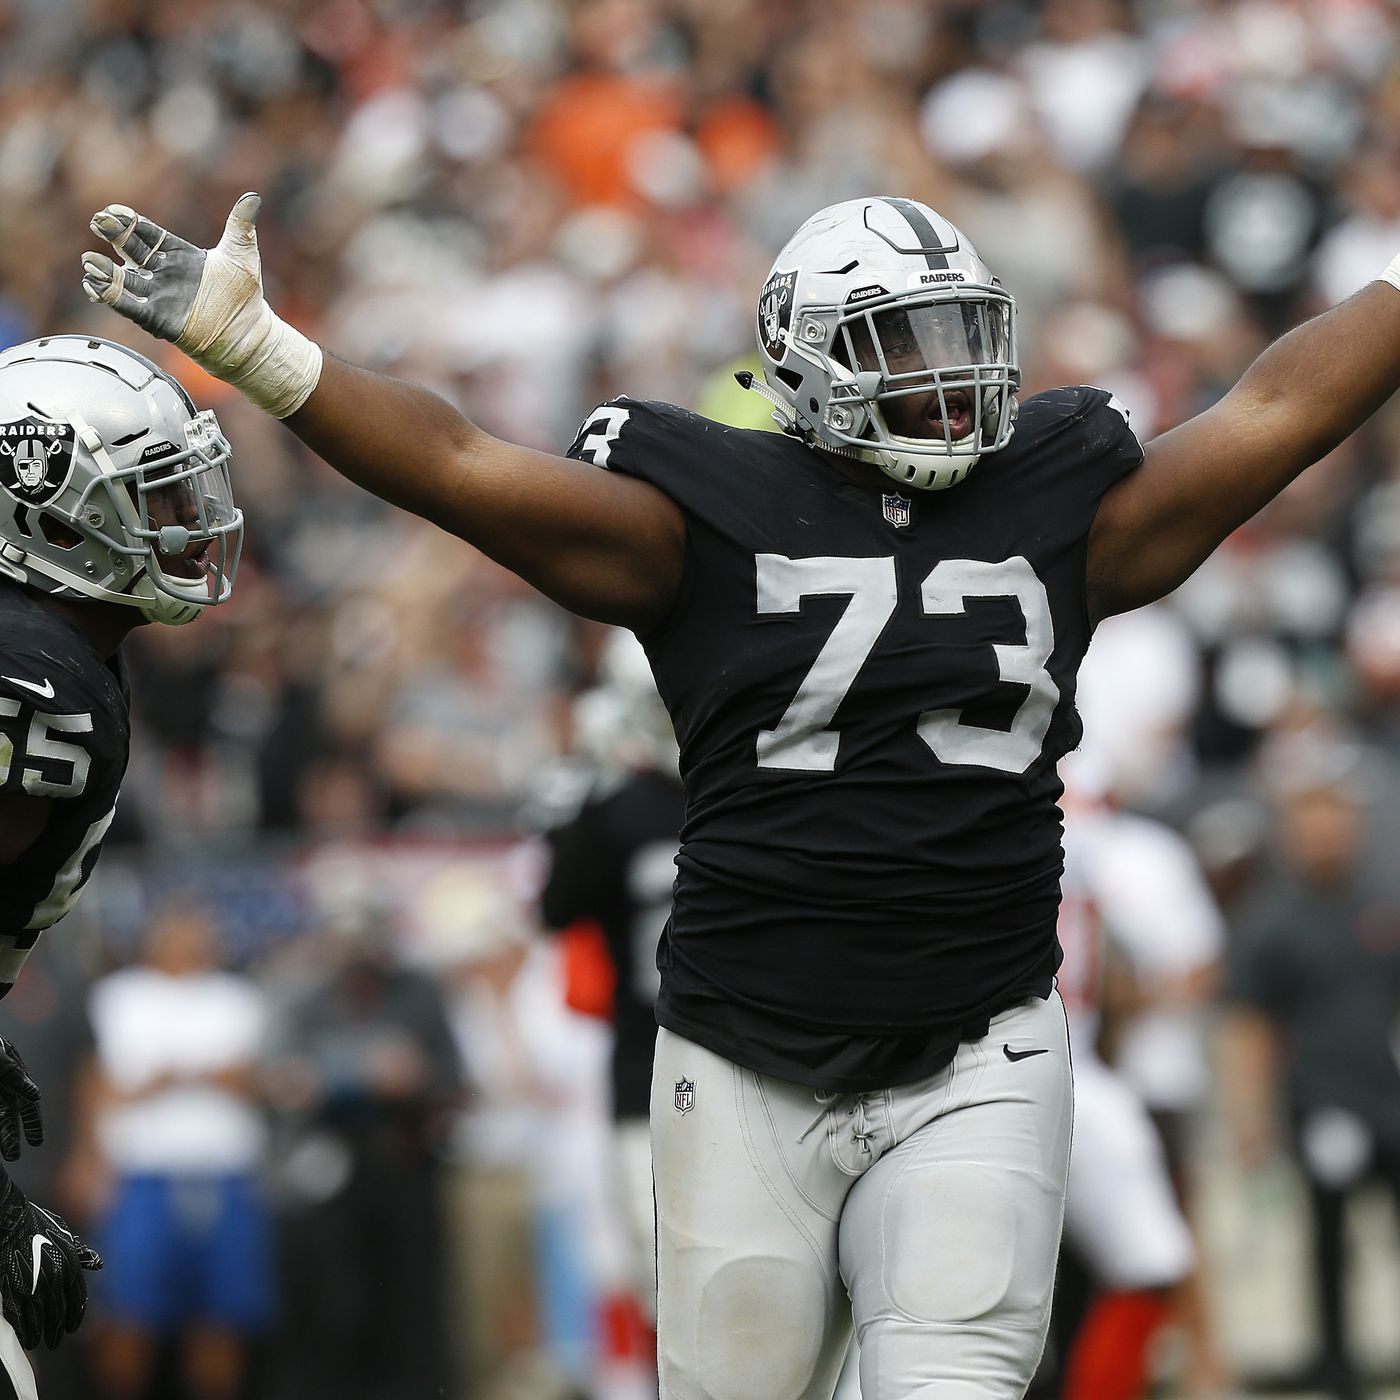 hot sale online 2e159 c0dc4 Mo Hurst strip-sack and more wounded UM Alums during NFL ...